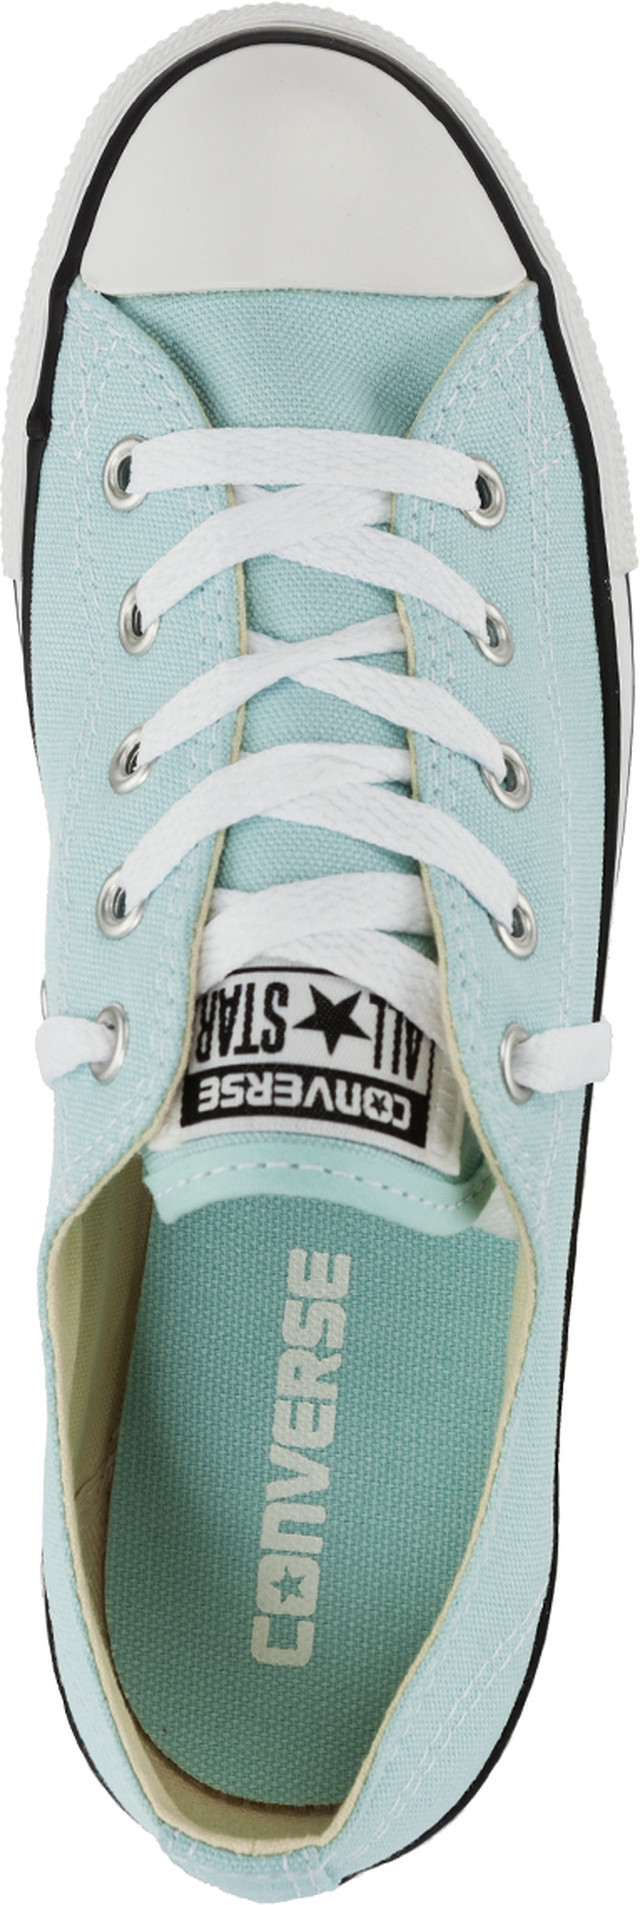 5620126564c2 ... Trampki Converse  br   small 551511 Chuck Taylor All Star Dainty ...